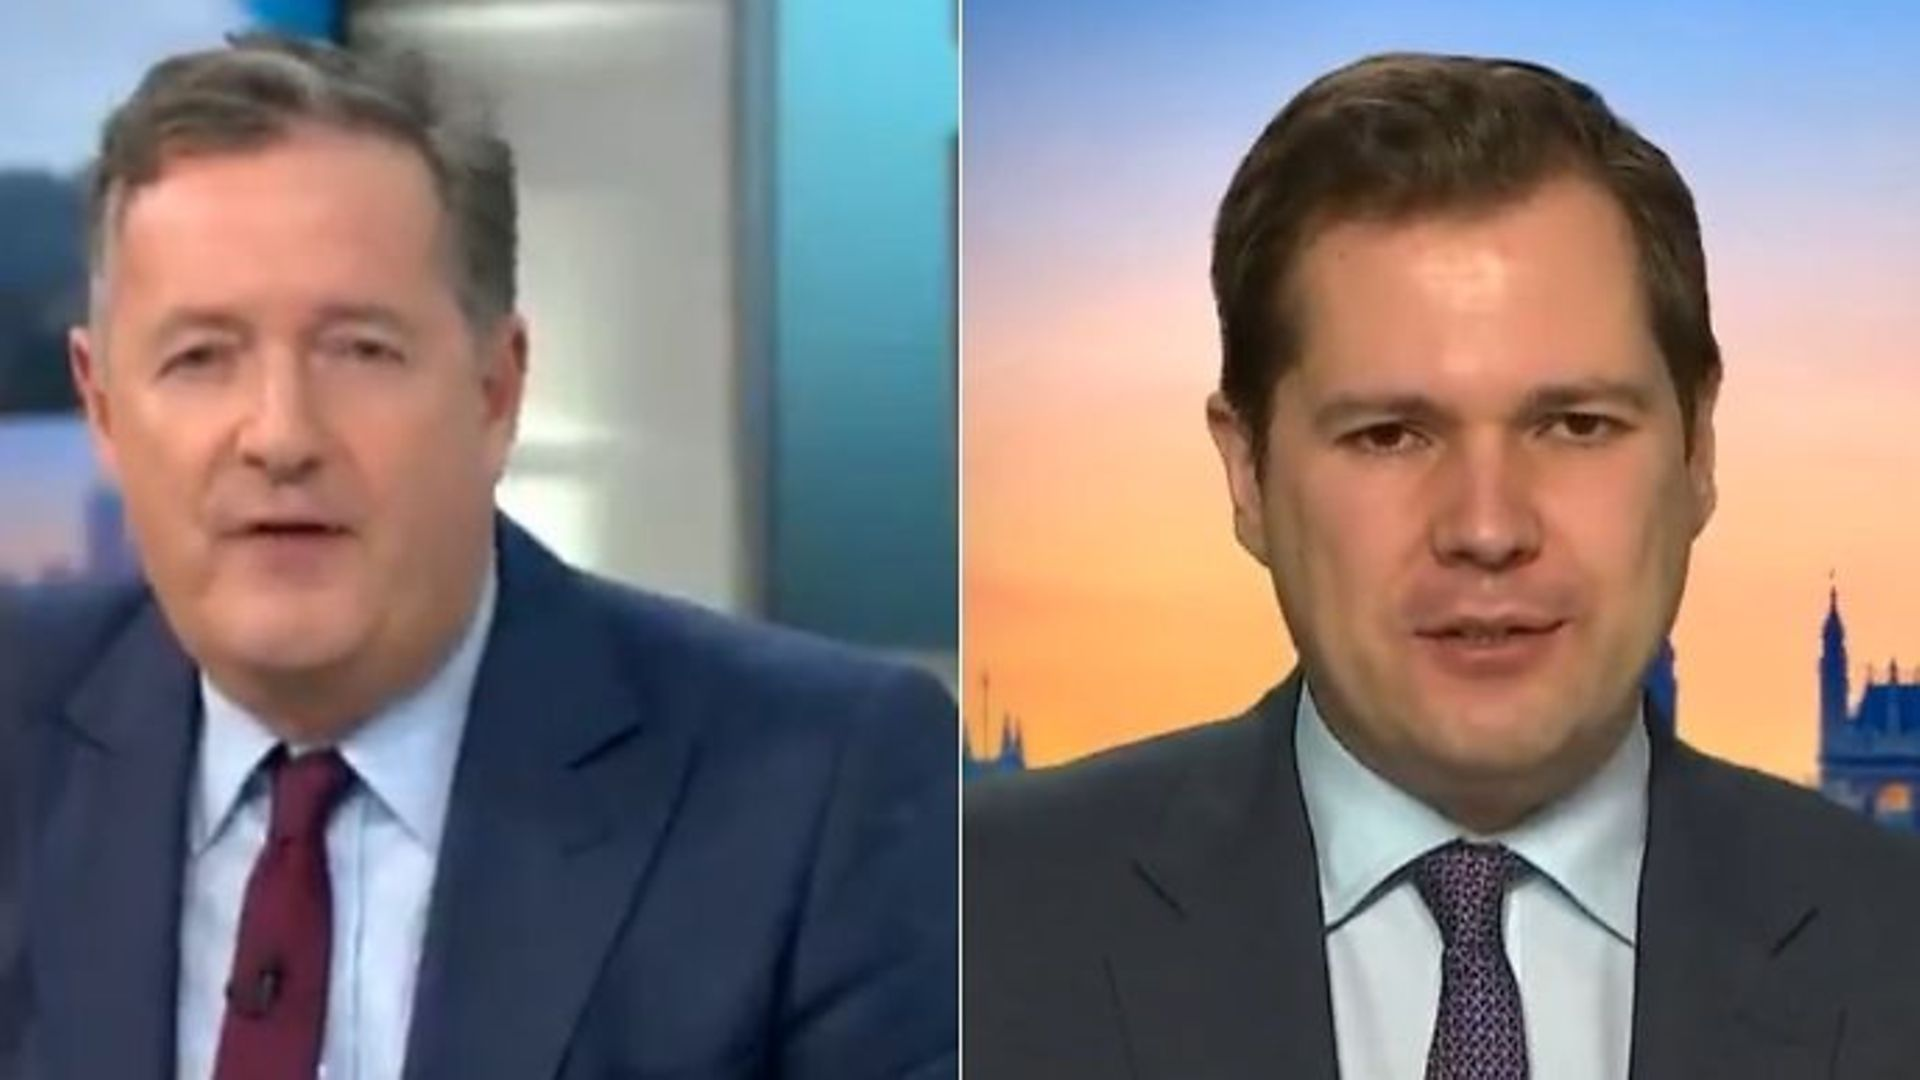 Piers Morgan (L) and cabinet minister Robert Jenrick on GMB - Credit: Twitter